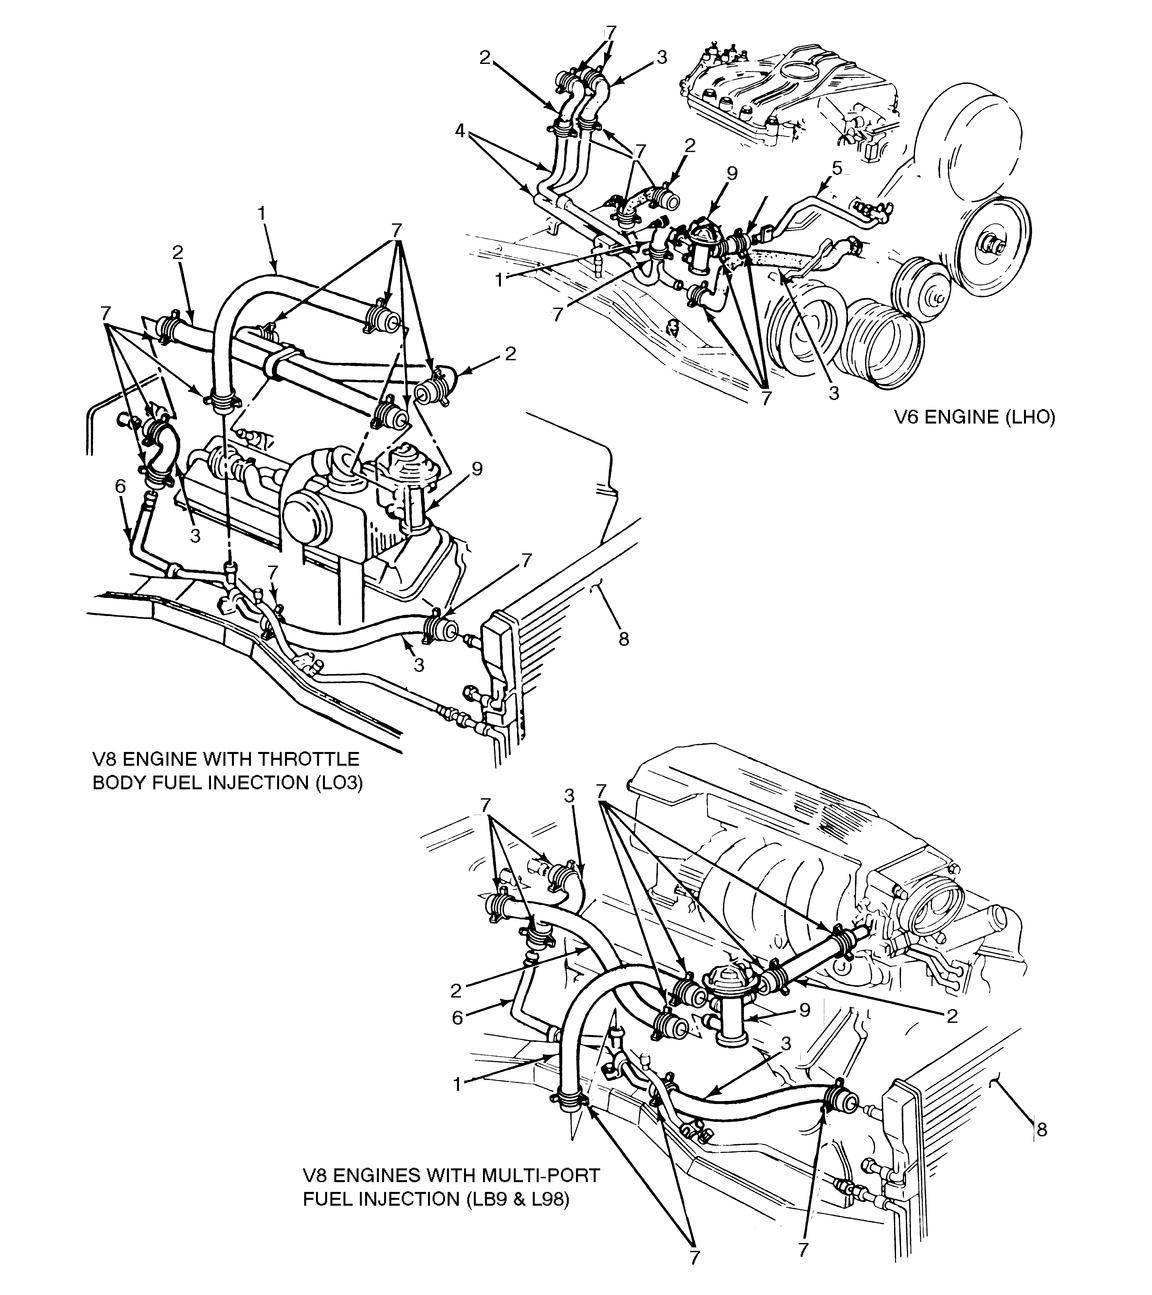 I Have A 1992 Firebird 50 Am Replacing The Heater Core Came L98 Engine Diagram Graphic